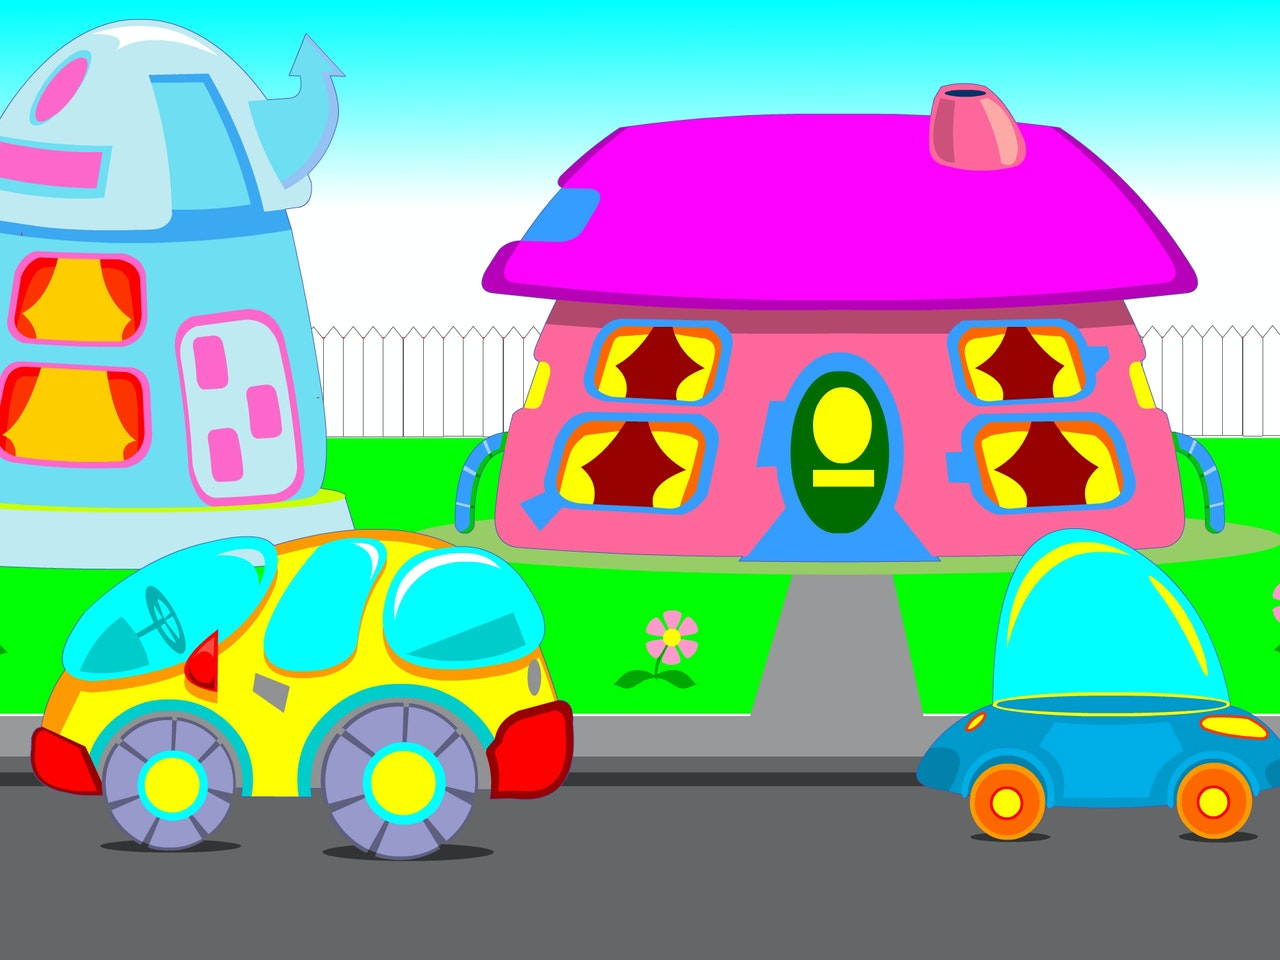 robotic house road safety future city educational healthy living droid mech technology smart happy humorous comical colourful graphic cartoon anime